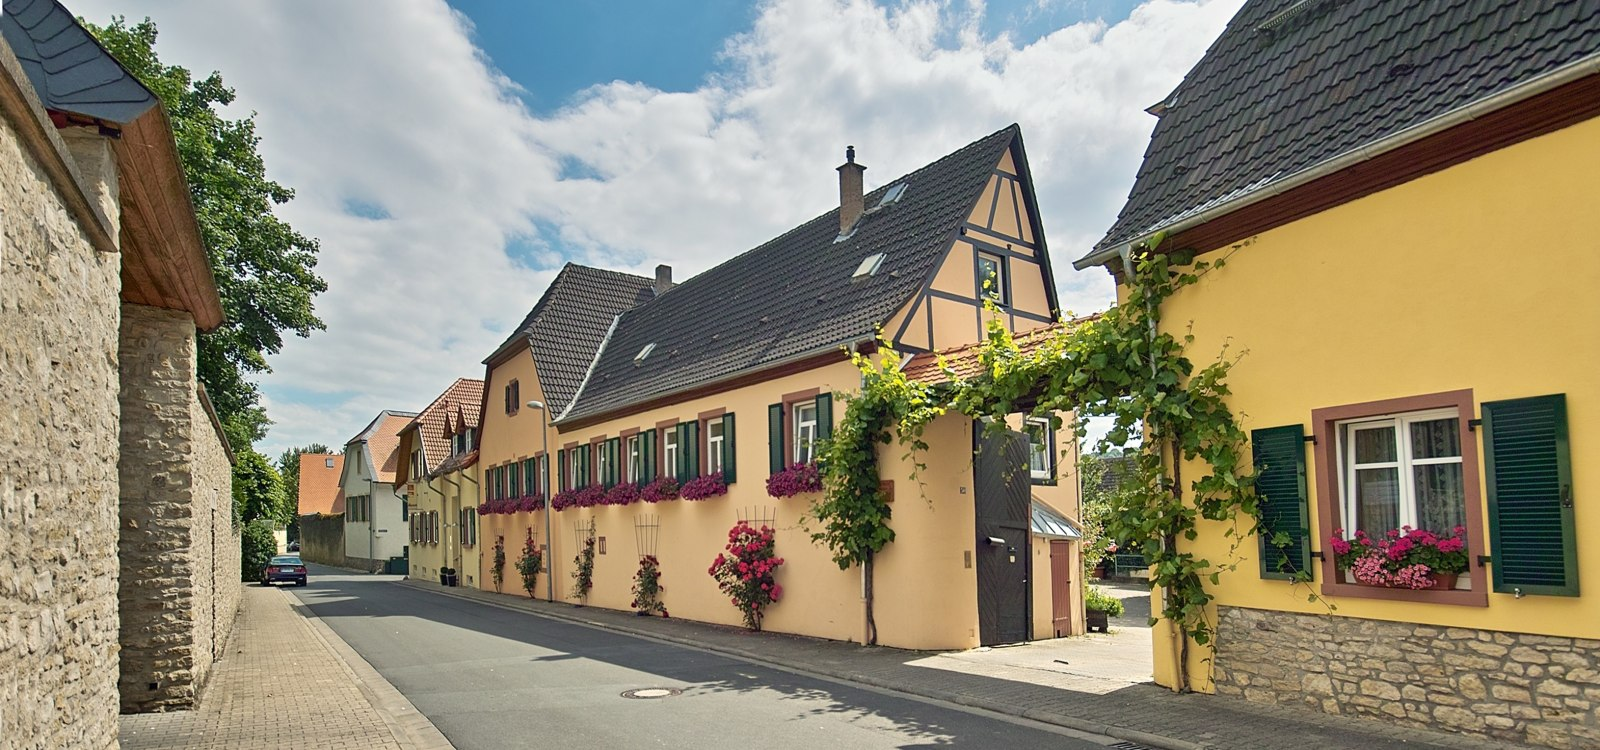 The Ober-Ingelheim district in particular is known for its romantic streets, nooks and crannies., © Horst Göbel / Hünstetten